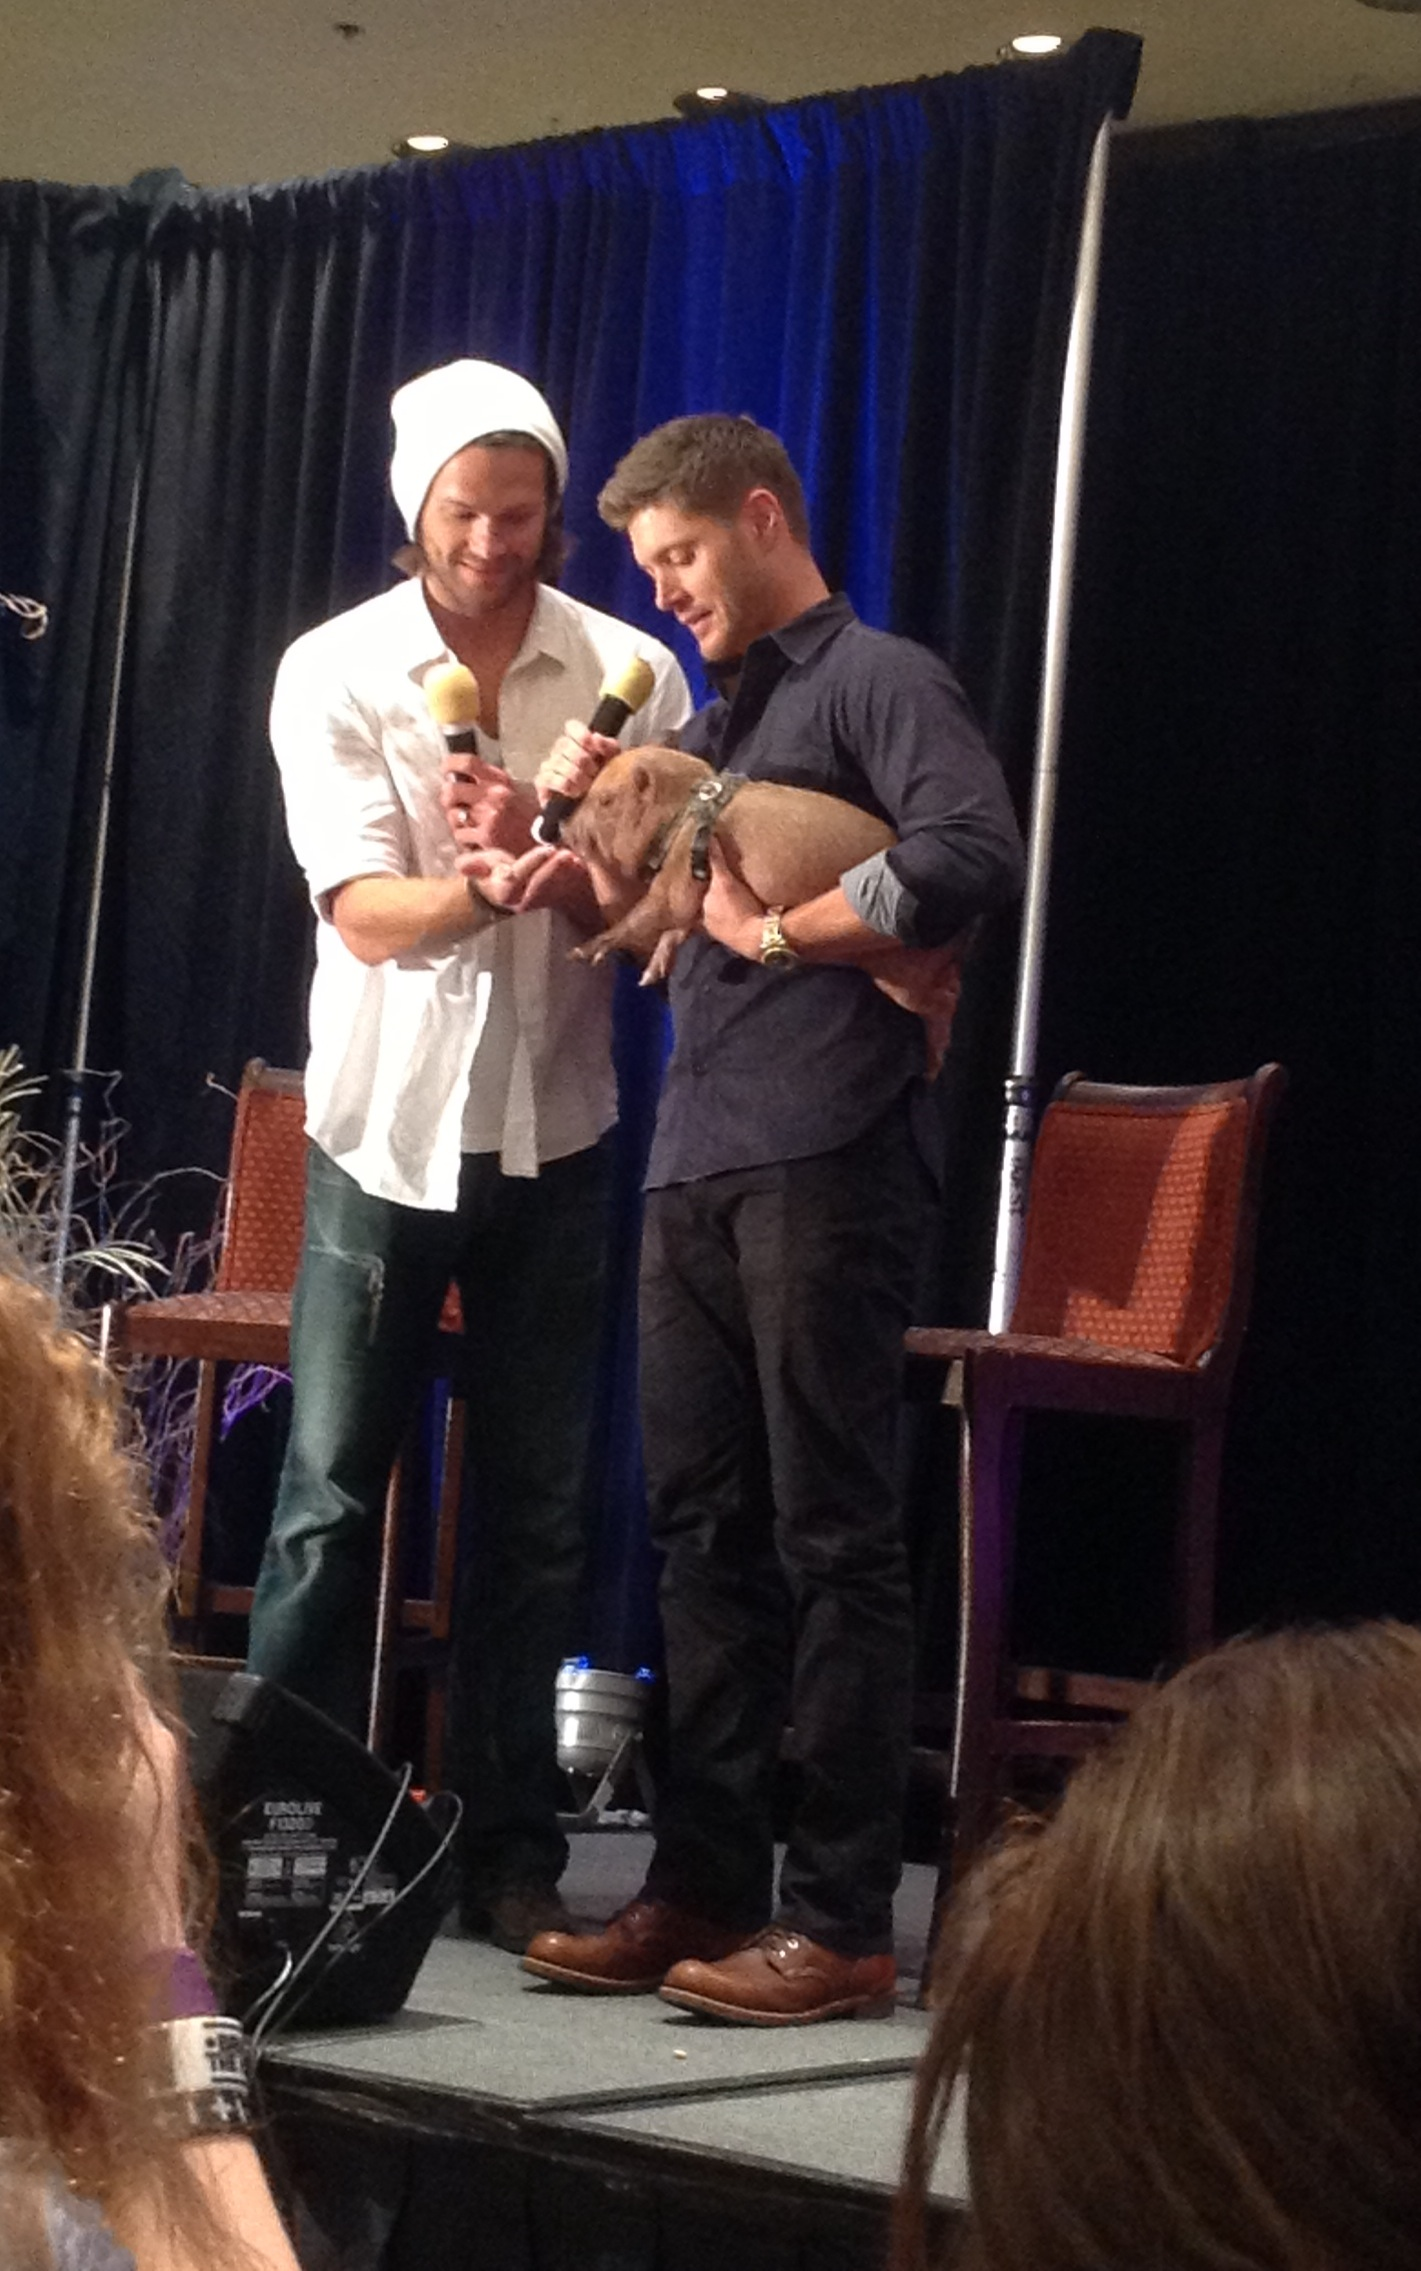 Jensen ackles at dallascon meet and greet excerpts and that jared jensen and icarus the pig kristyandbryce Images